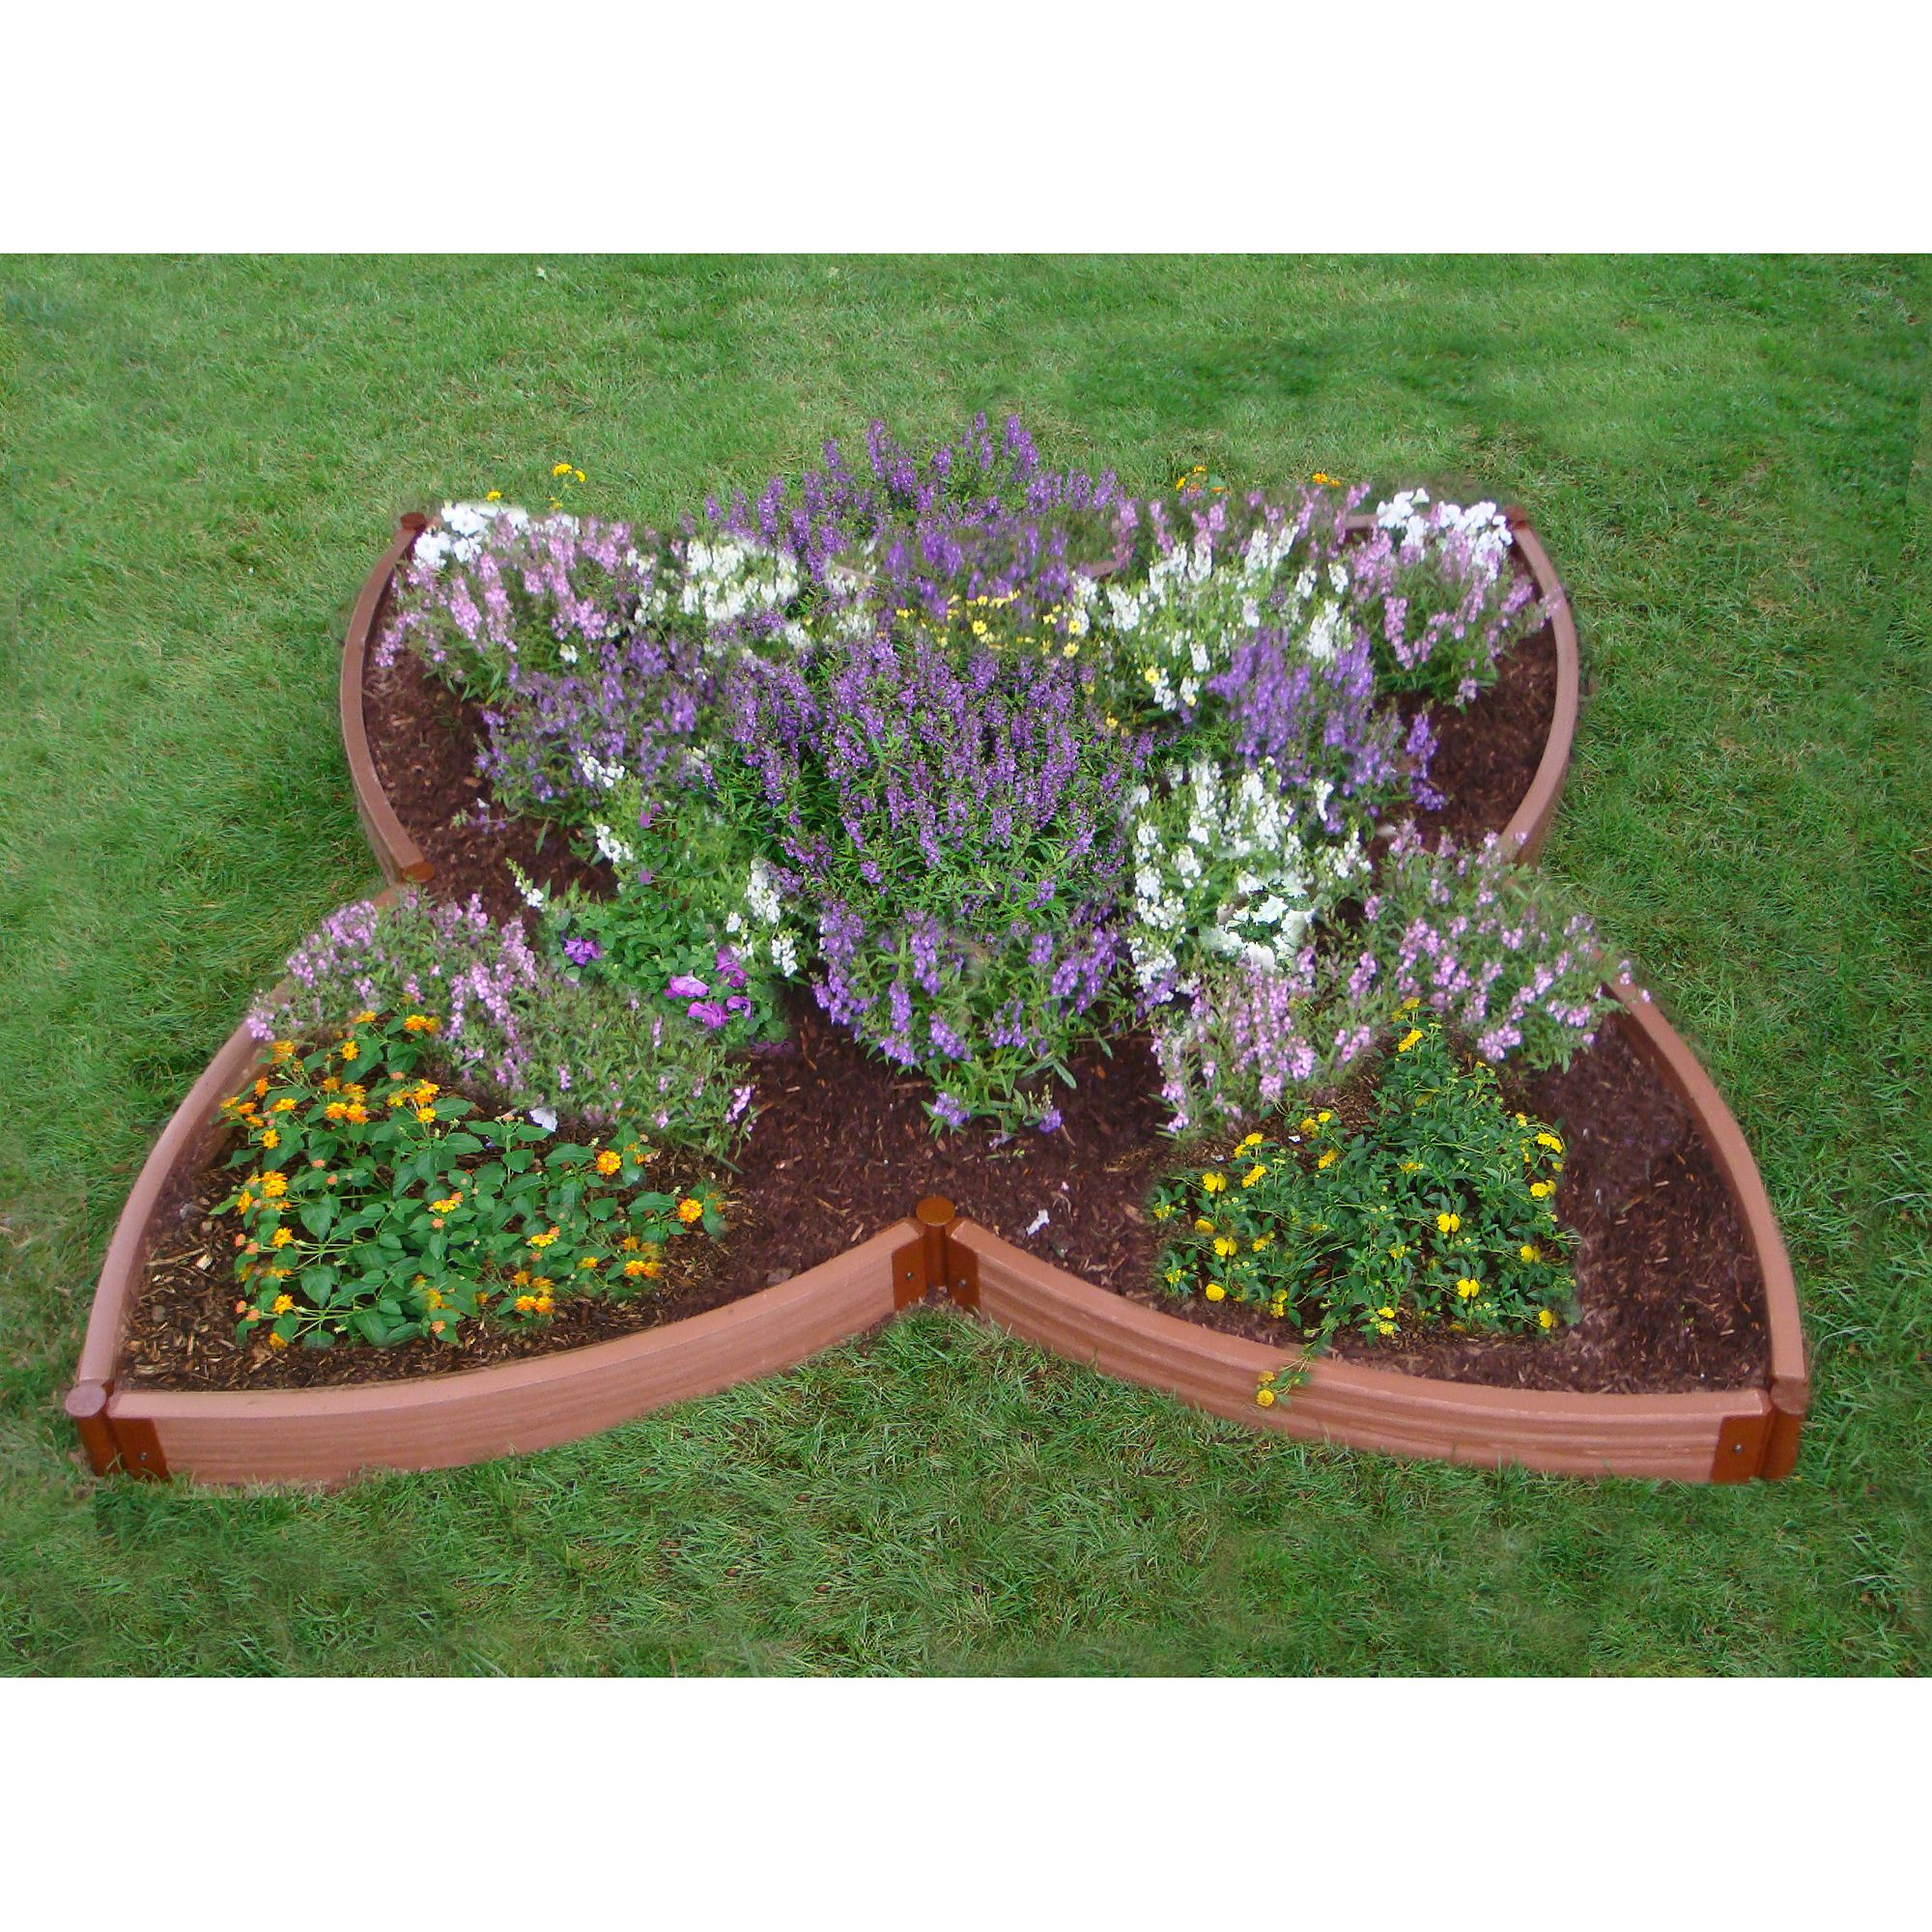 "Frame It All Two Inch Series 120"" x 120"" x 5.5"" Composite 4-Leaf Clover Raised Garden Bed"